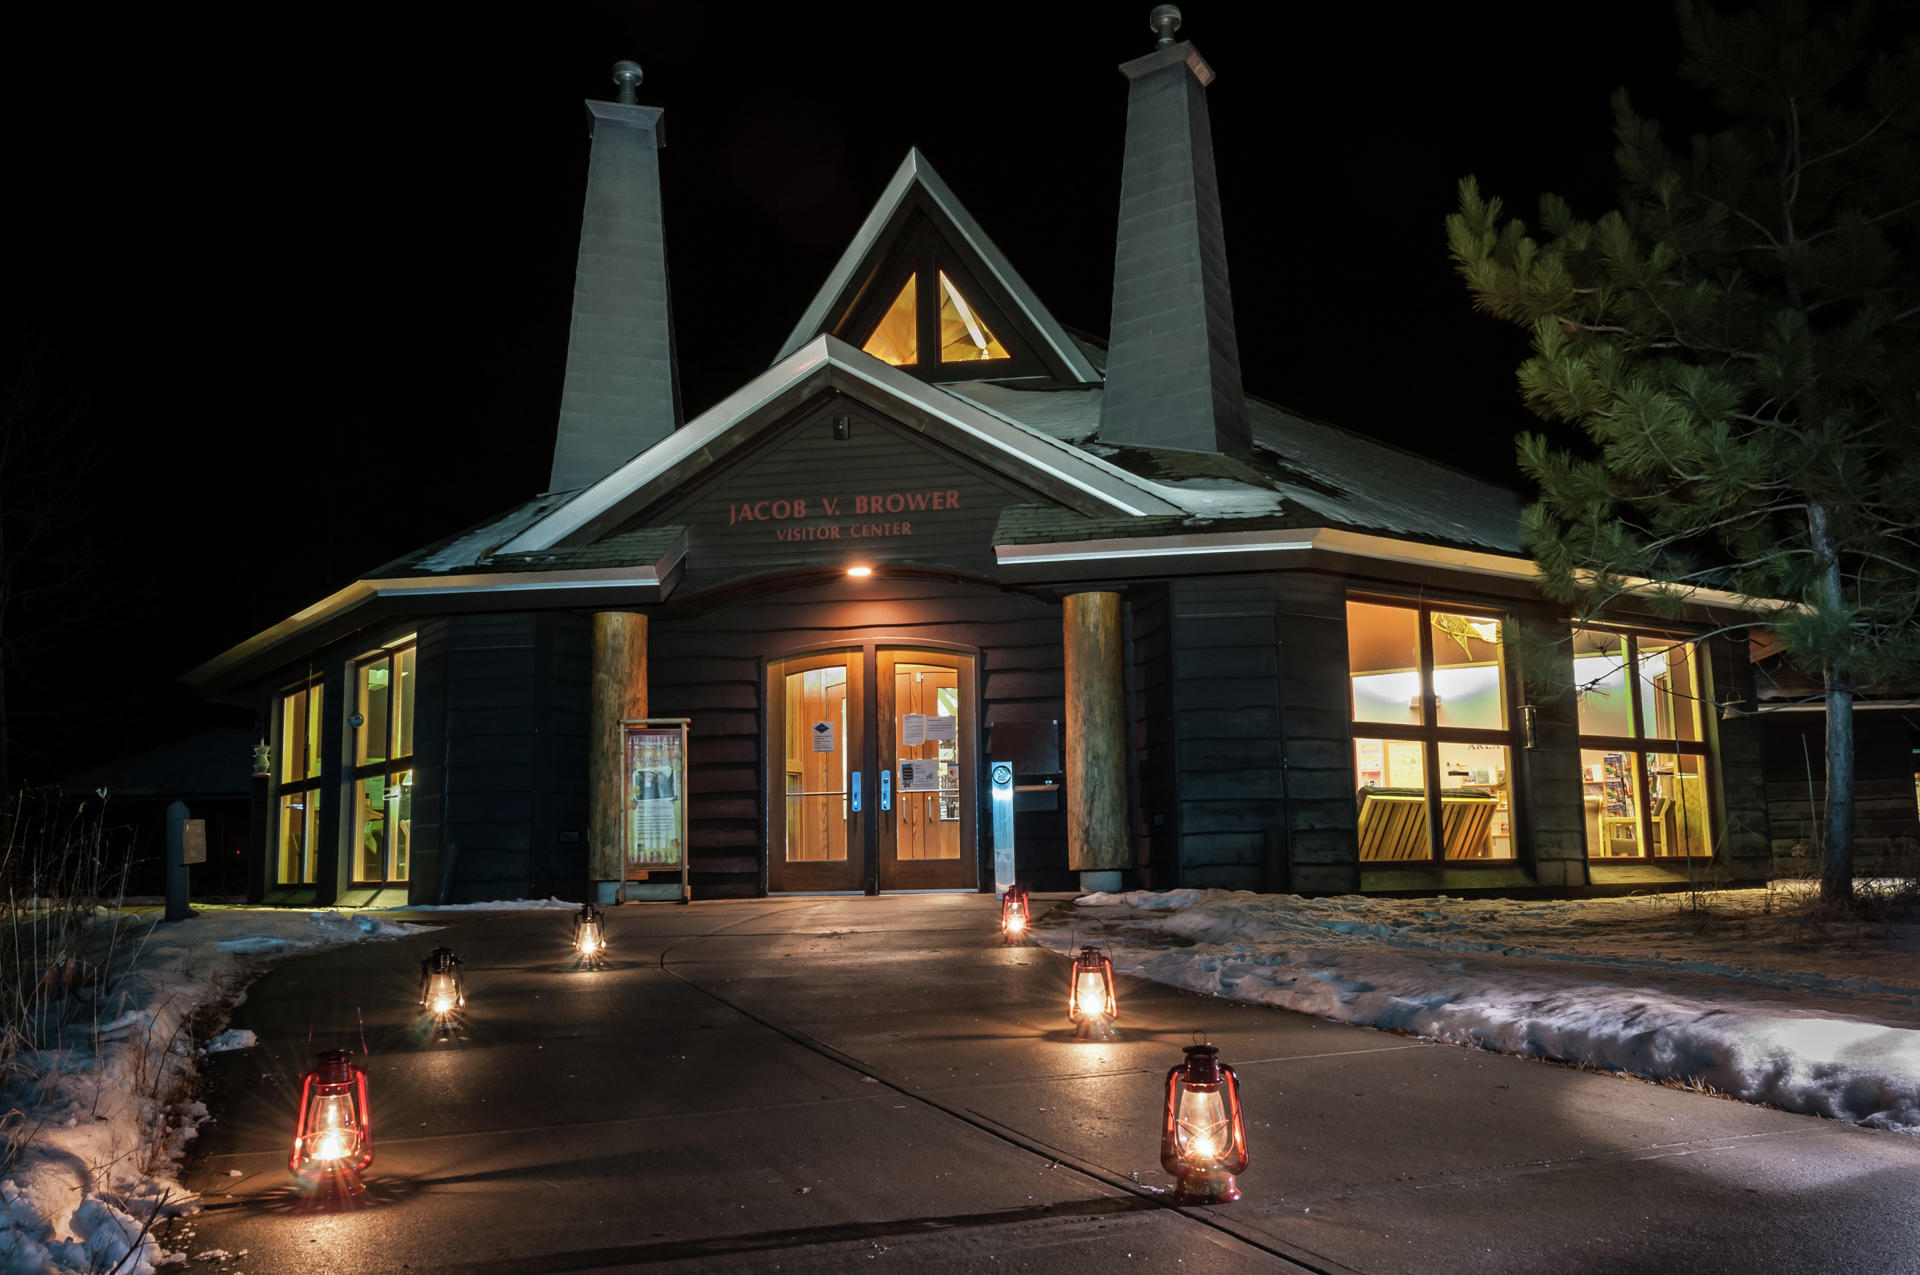 The path to the Jacob V. Brower Visitor Center will be lit by kerosene lanterns during the park's annual Lantern Lit Ski & Snowshoe event, which gets underway at 5 p.m. next Saturday, Jan. 12. (Minnesota DNR photo)